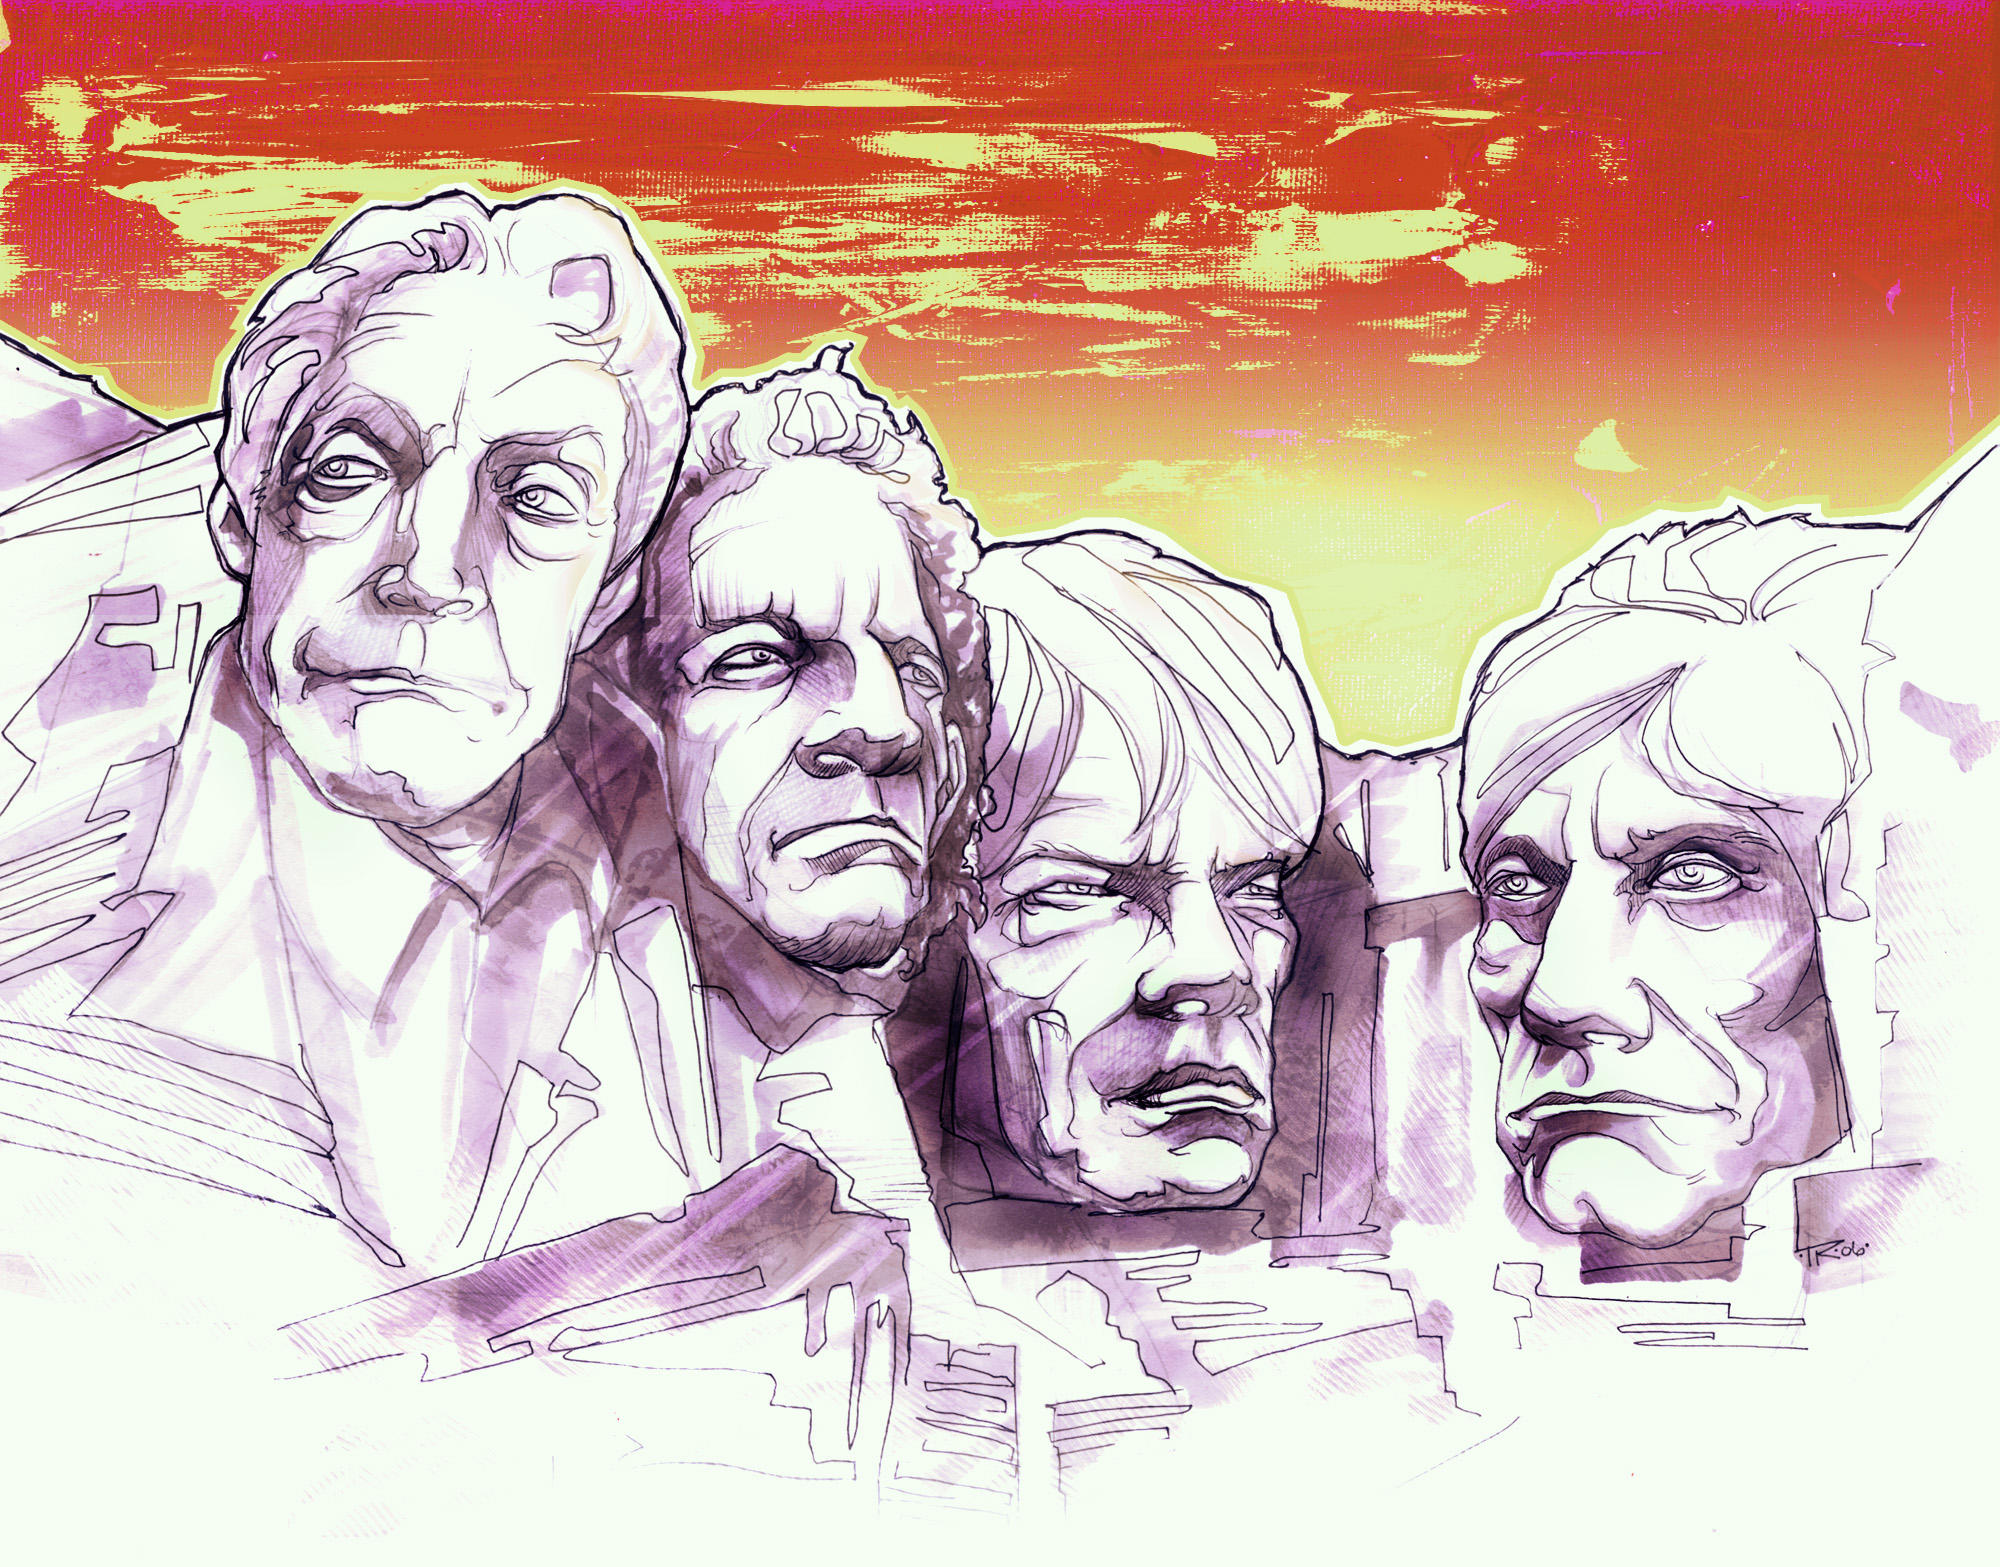 the rolling stones by brainleakage